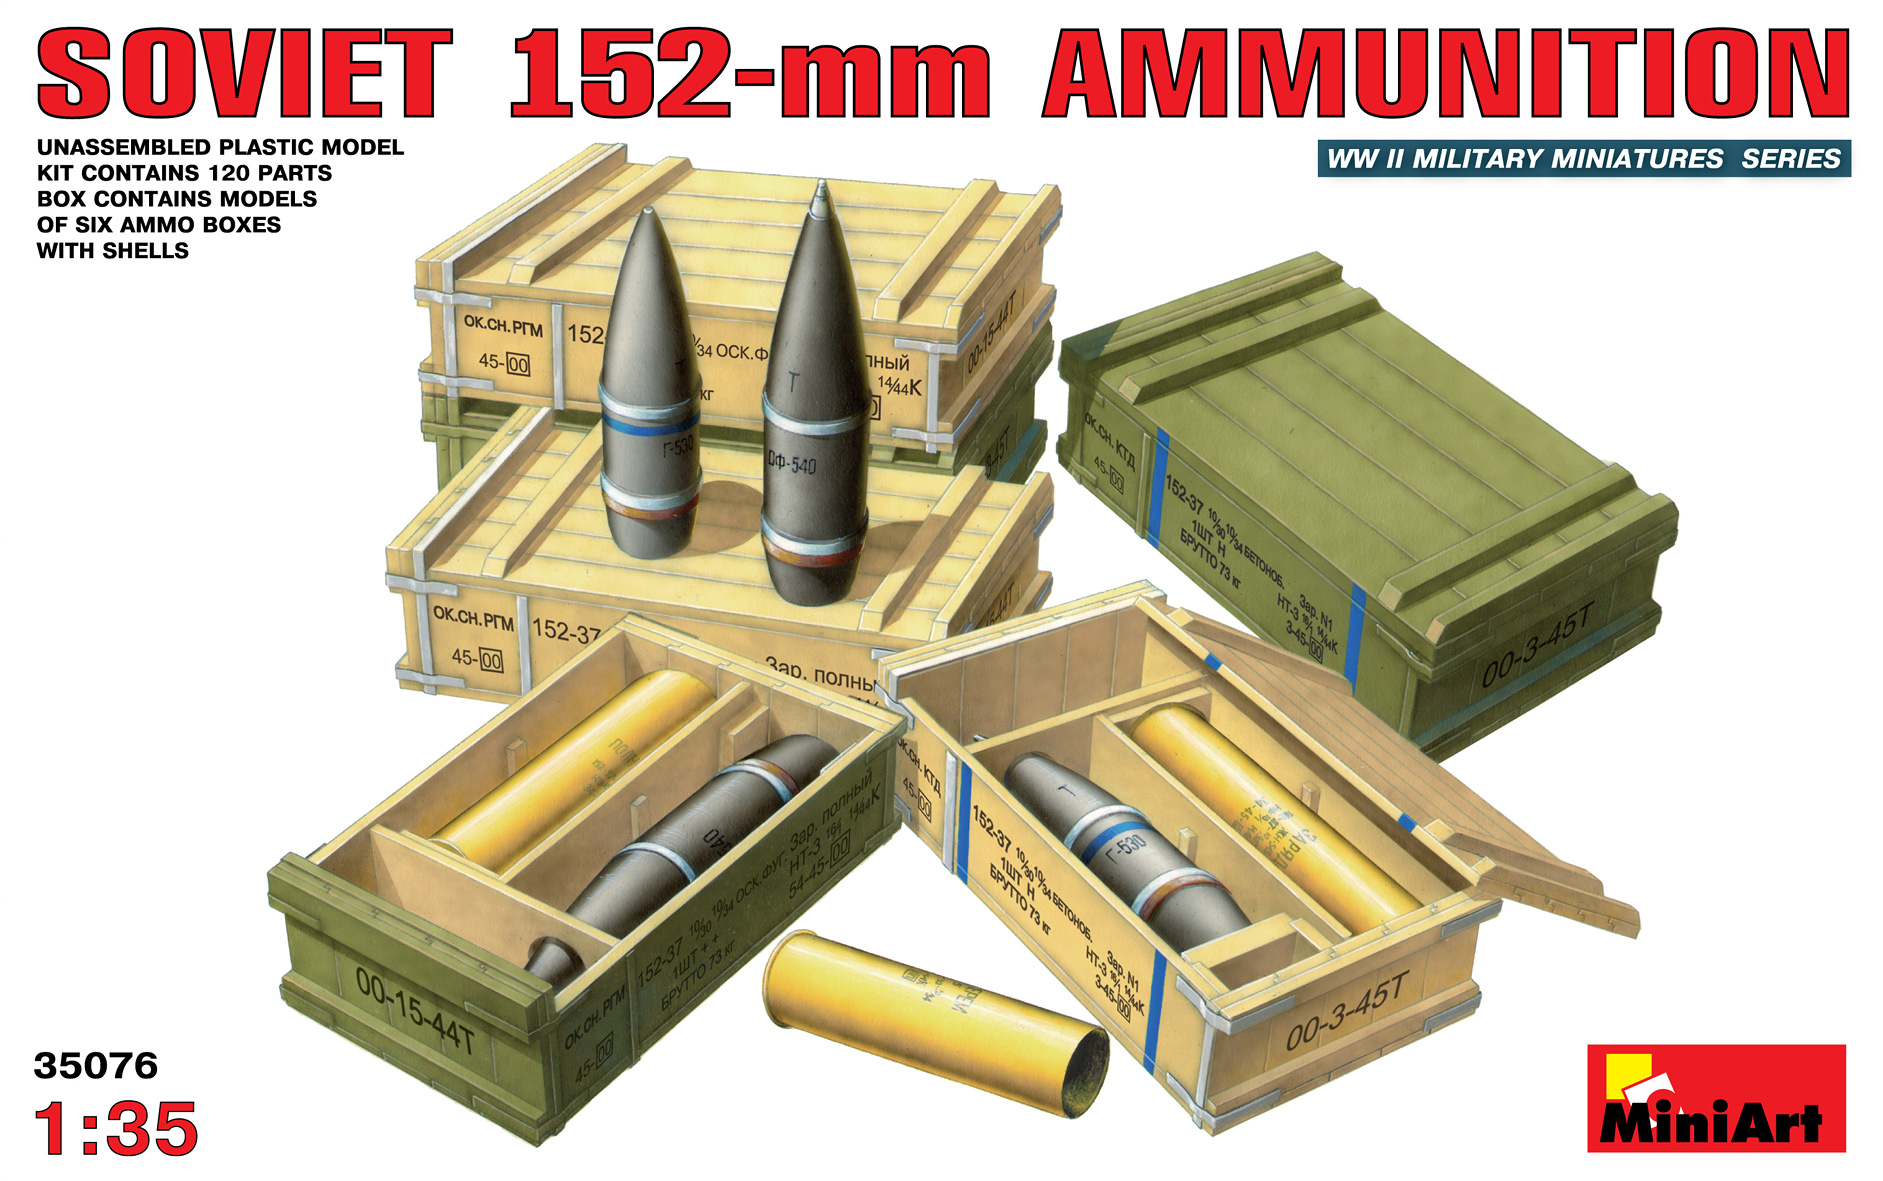 35076 SOVIET 152-mm AMMUNITION